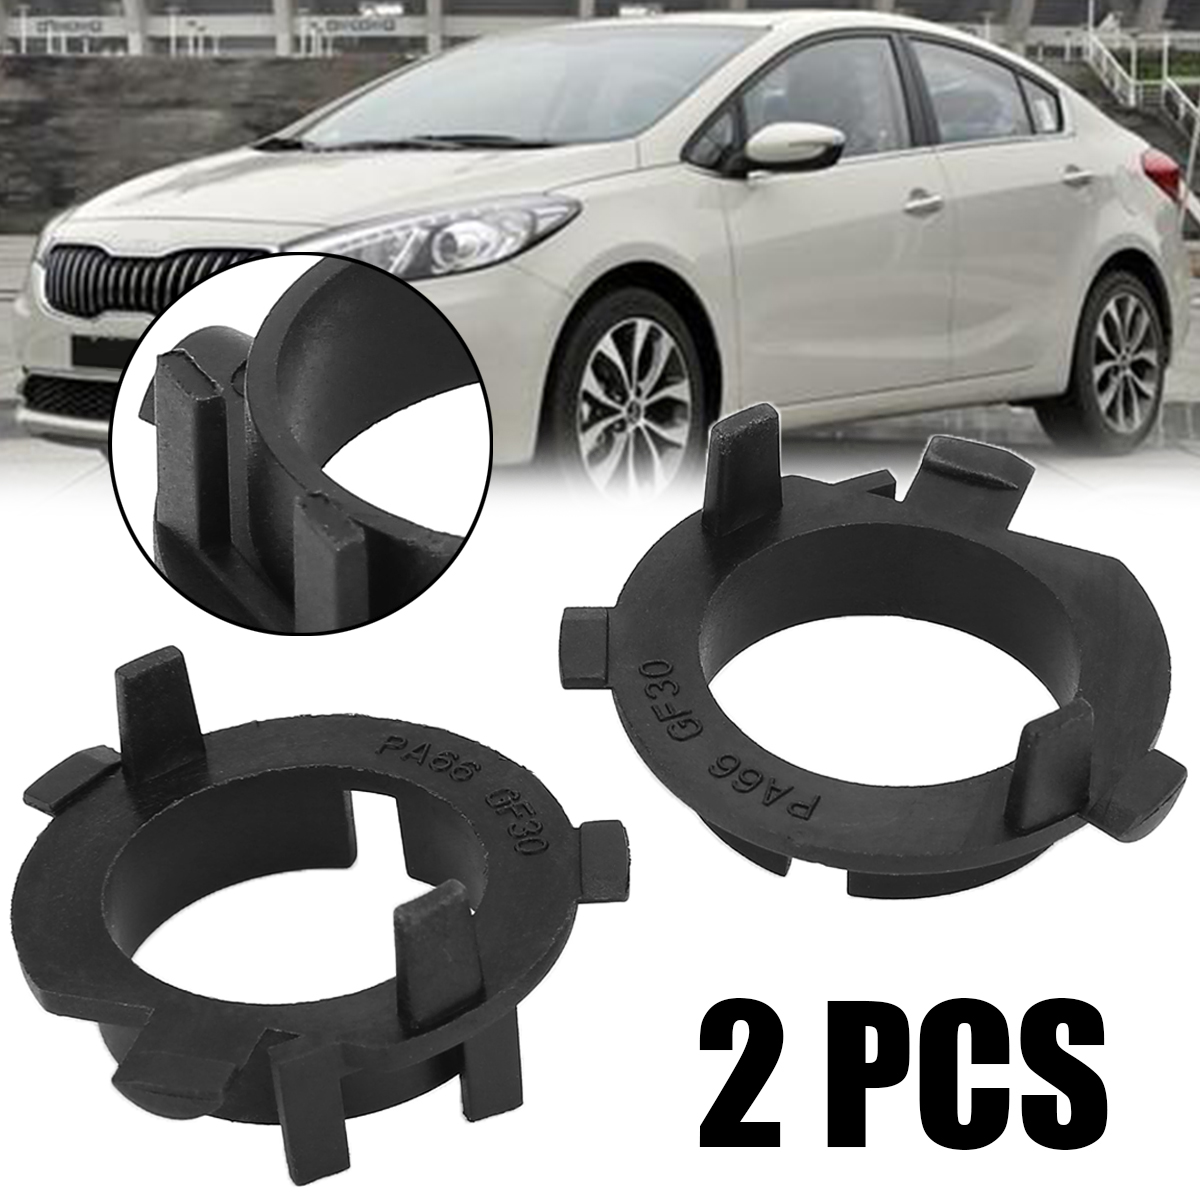 2Pcs Car H7 LED Headlight Bulb Retainers Holder Adapter Fit For Hyundai Veloster